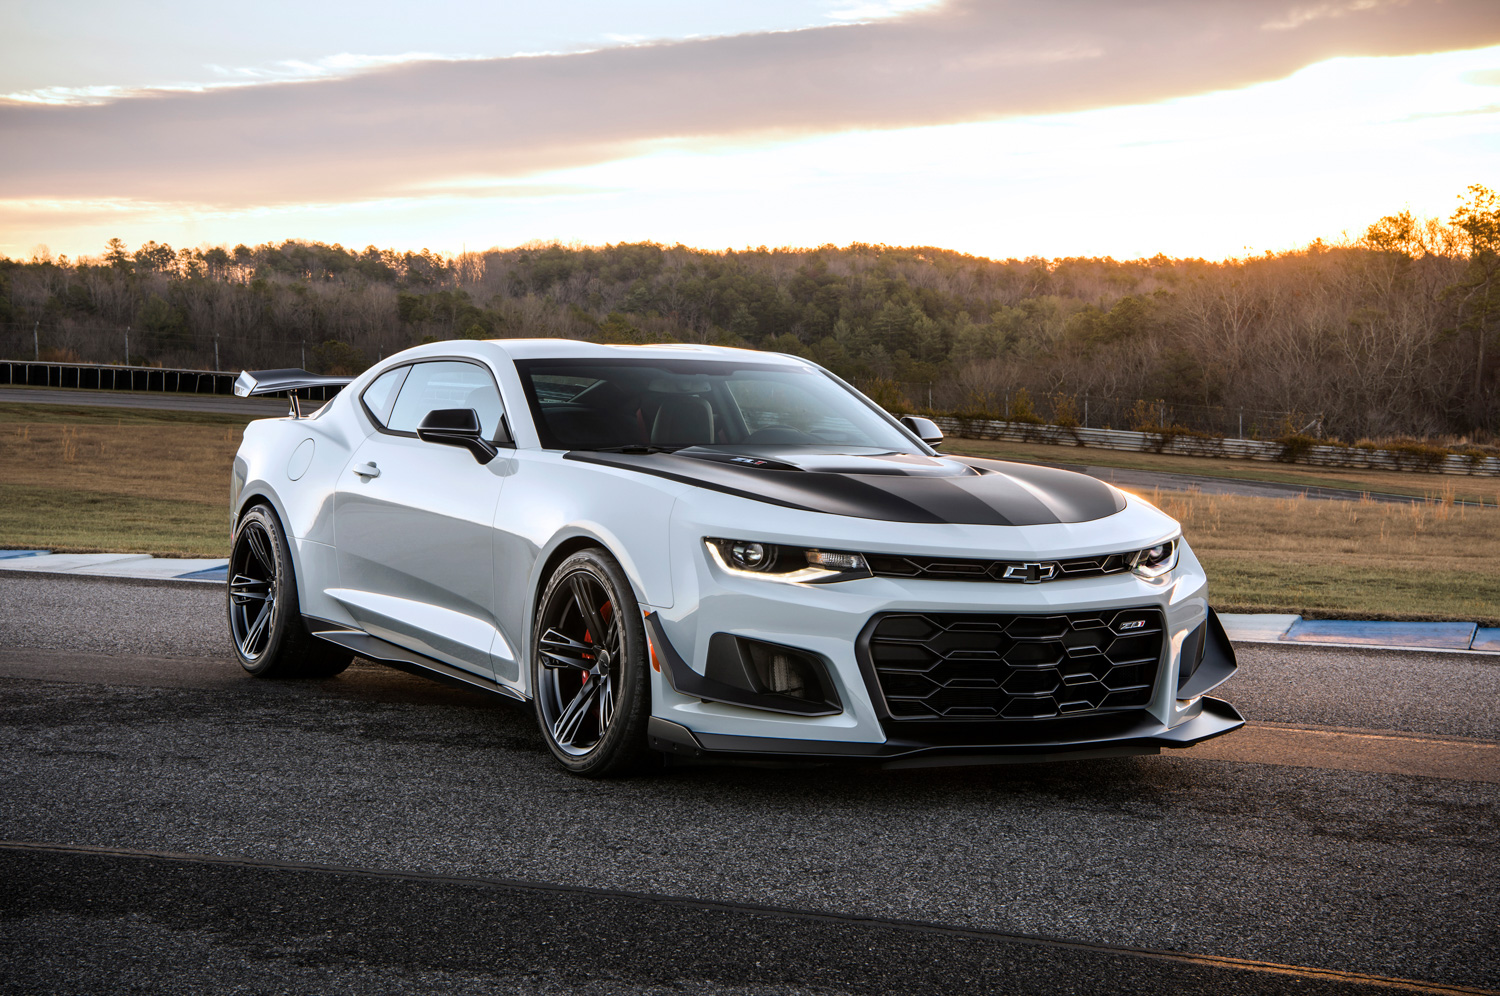 2019 Chevrolet Camaro ZL1 1LE 3/4 sunset